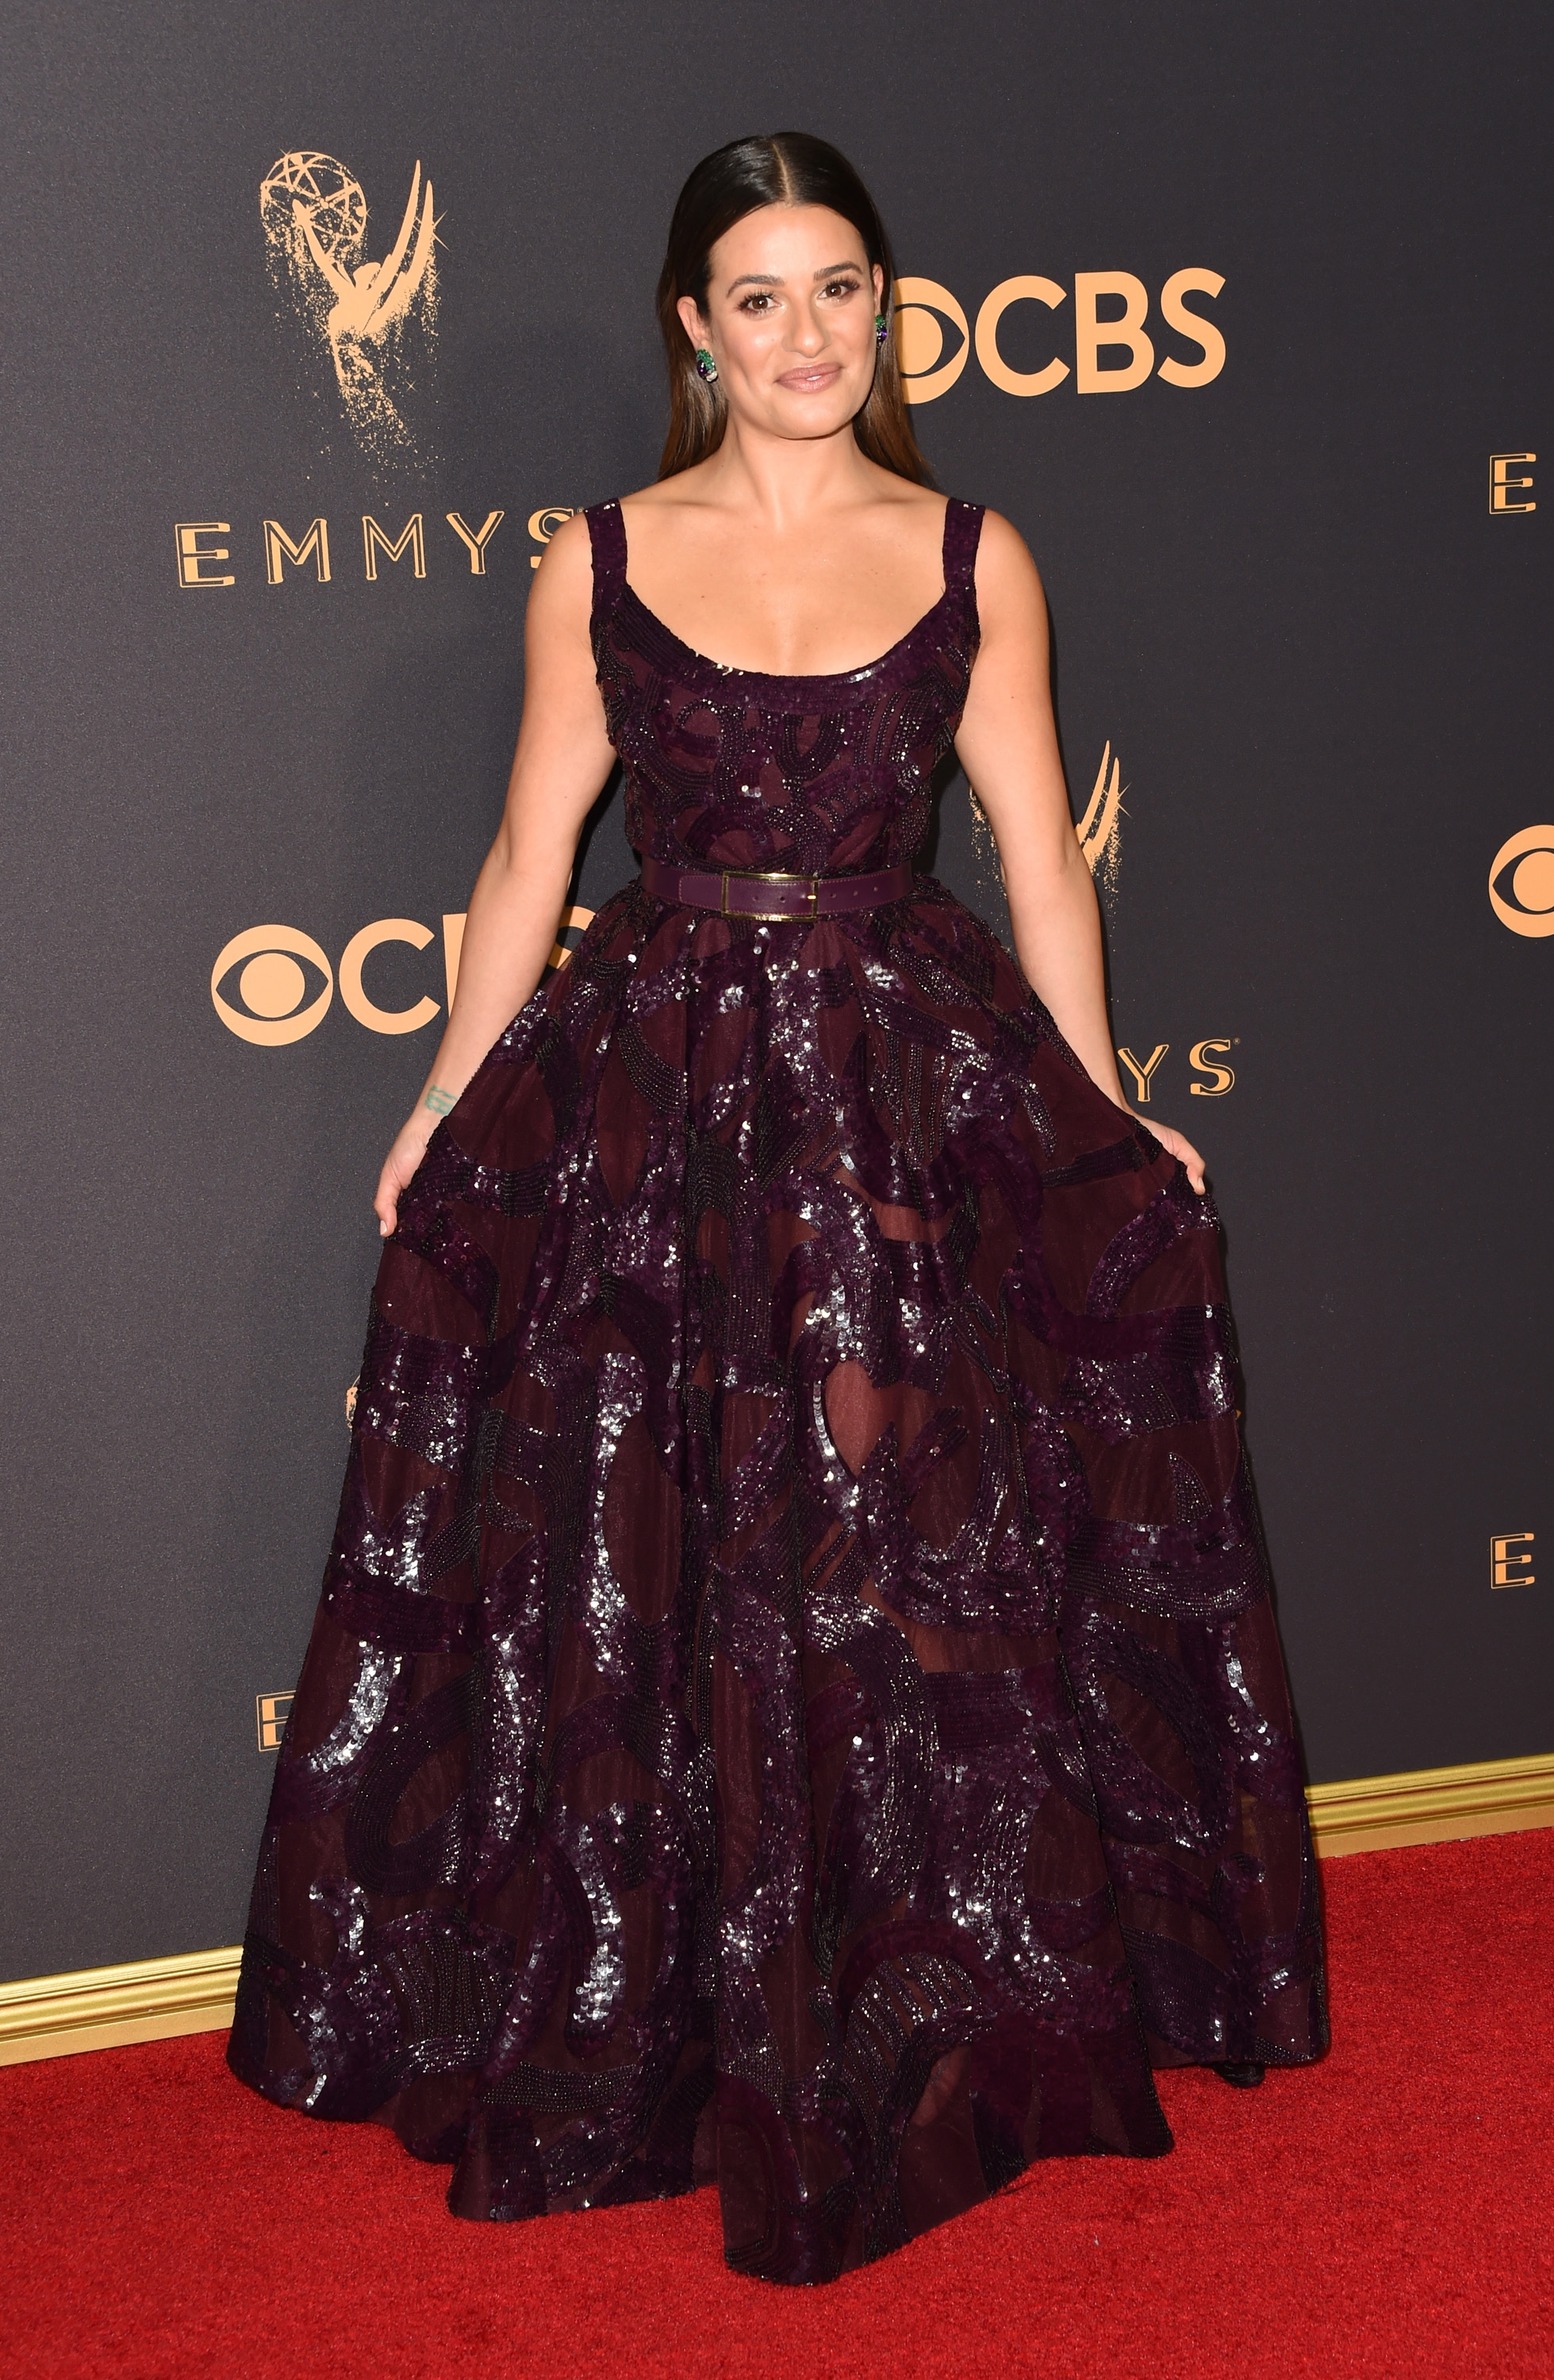 Lea Michele Emmys Red Carpet 2017